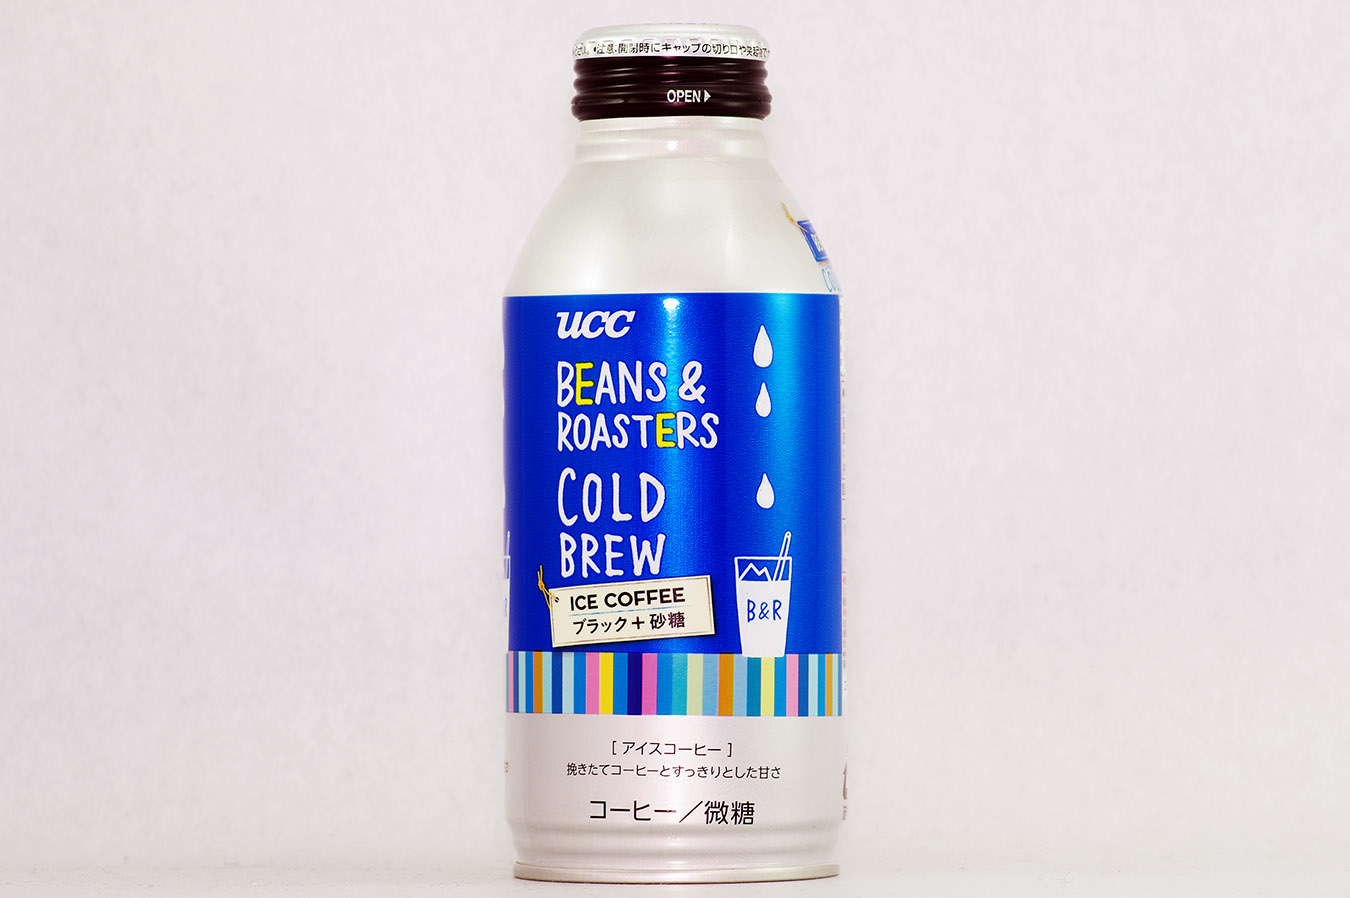 UCC BEANS & ROASTERS COLD BREW 375g缶 2016年4月